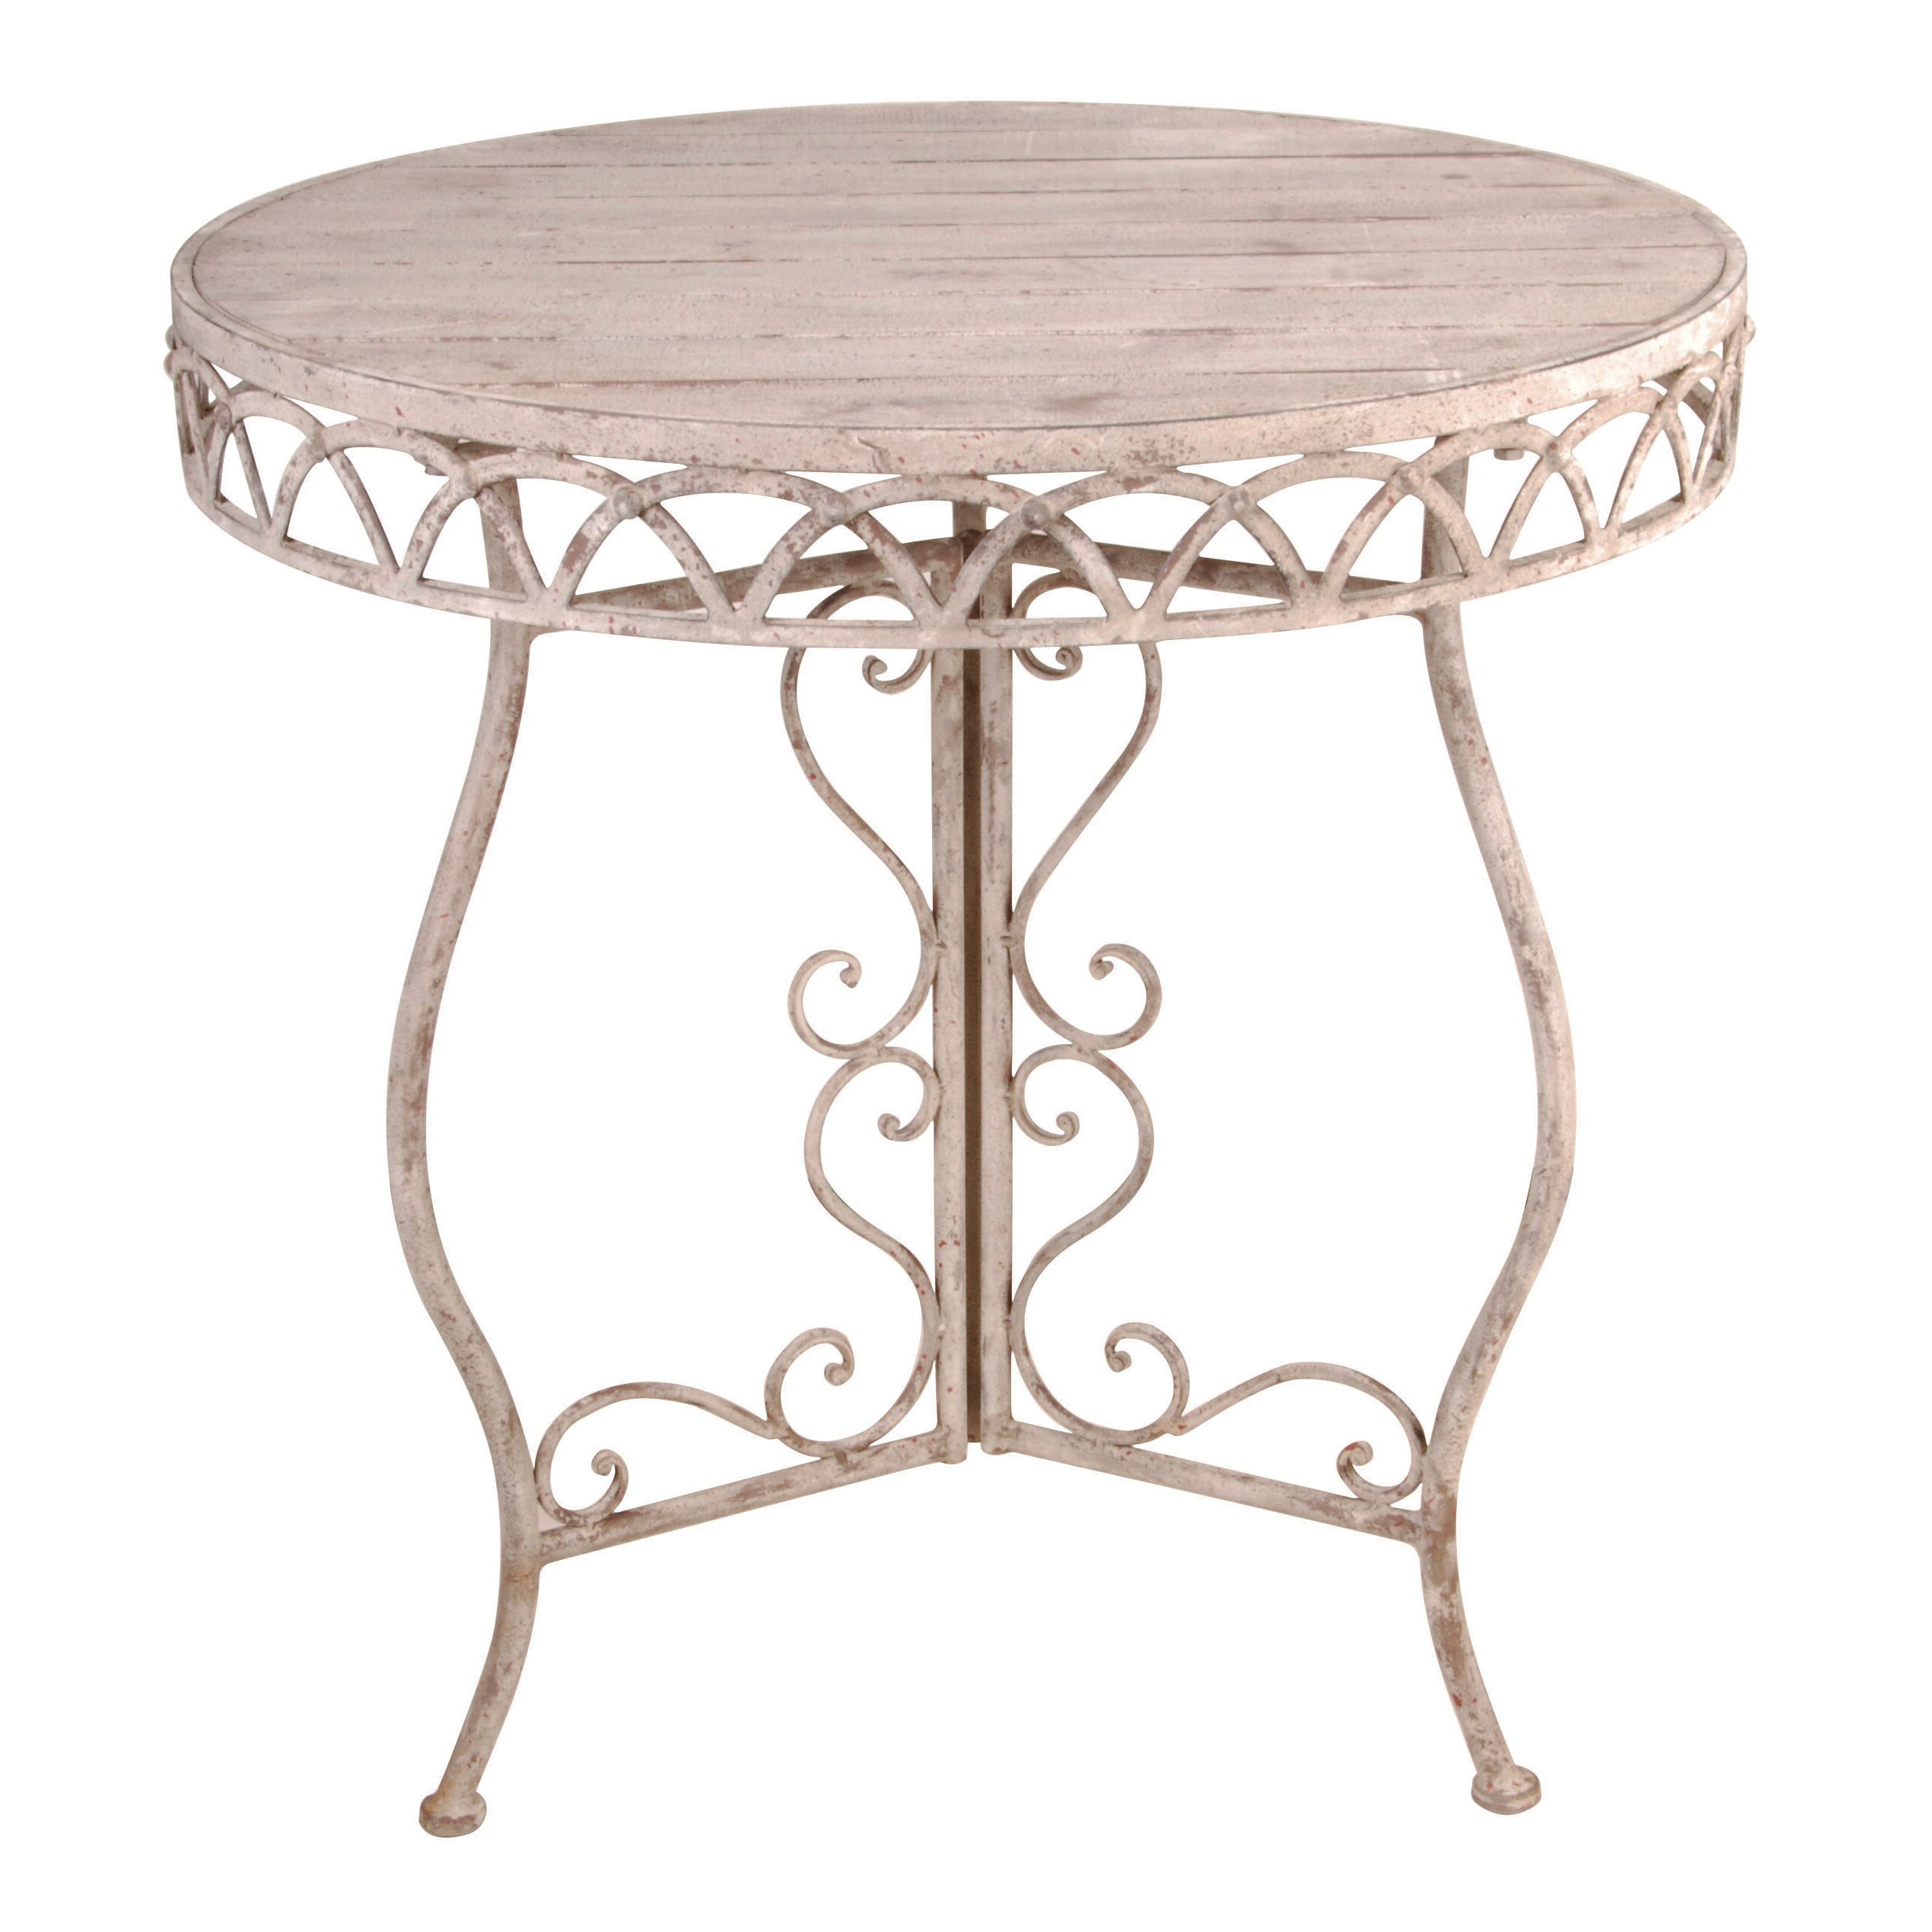 Esschertdesign aged metal bistro table reviews wayfair for Table 52 reviews